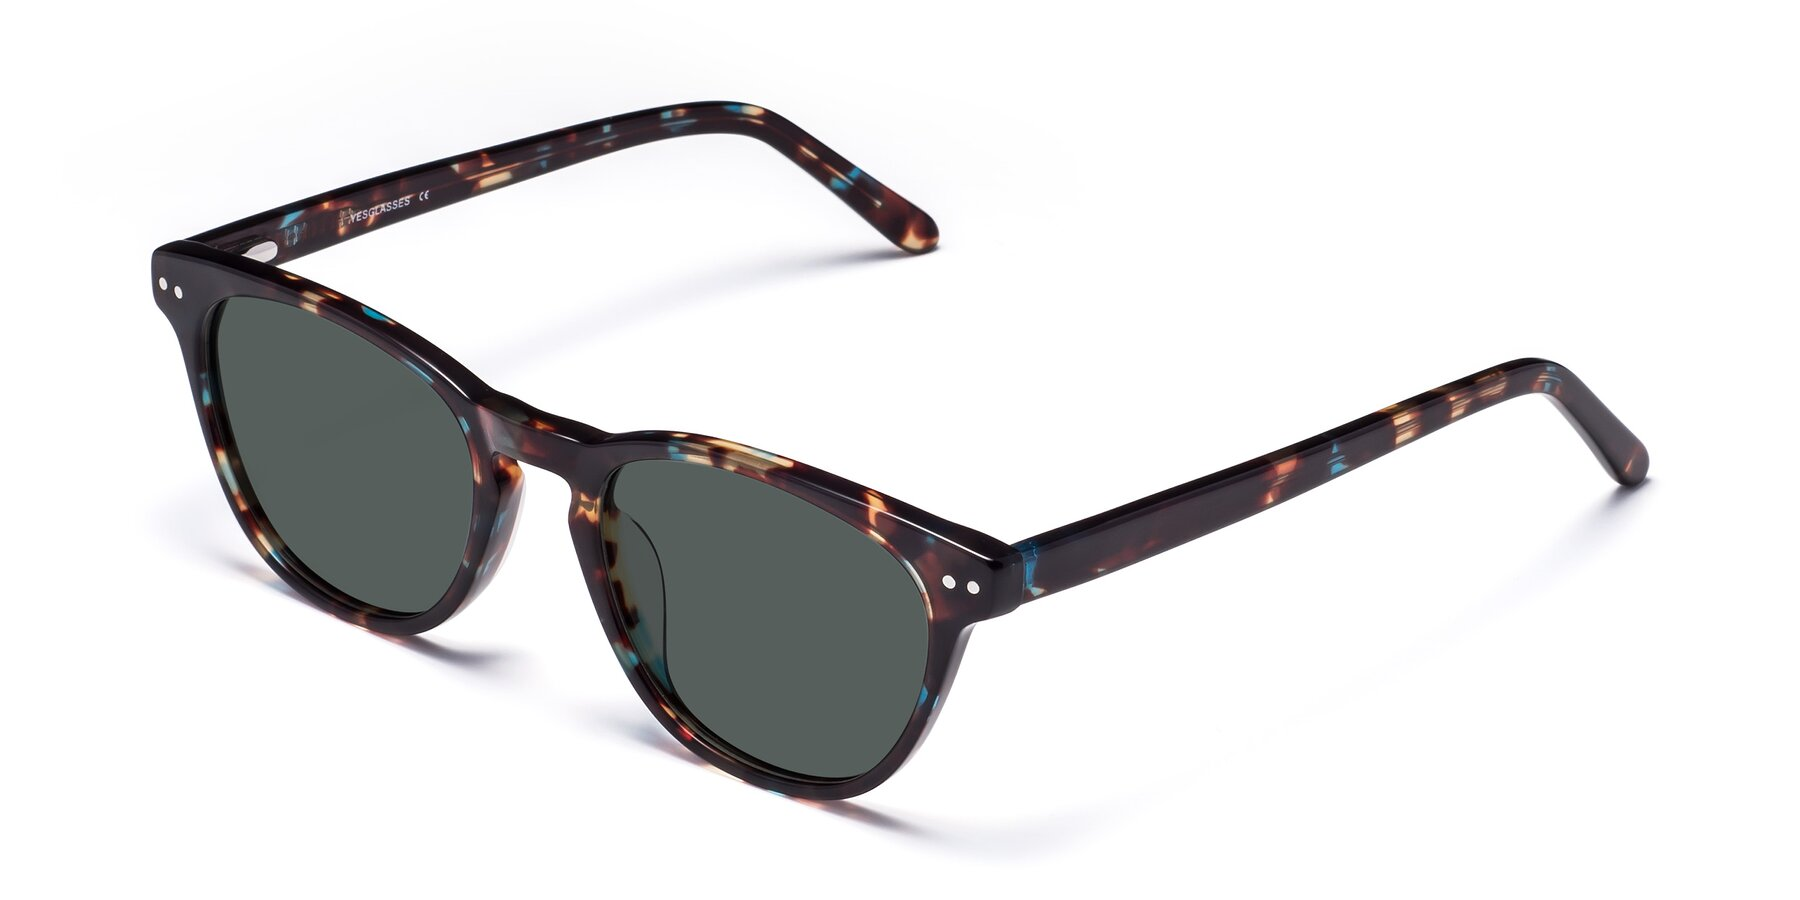 Angle of Blaze in Tortoise-Blue with Gray Polarized Lenses